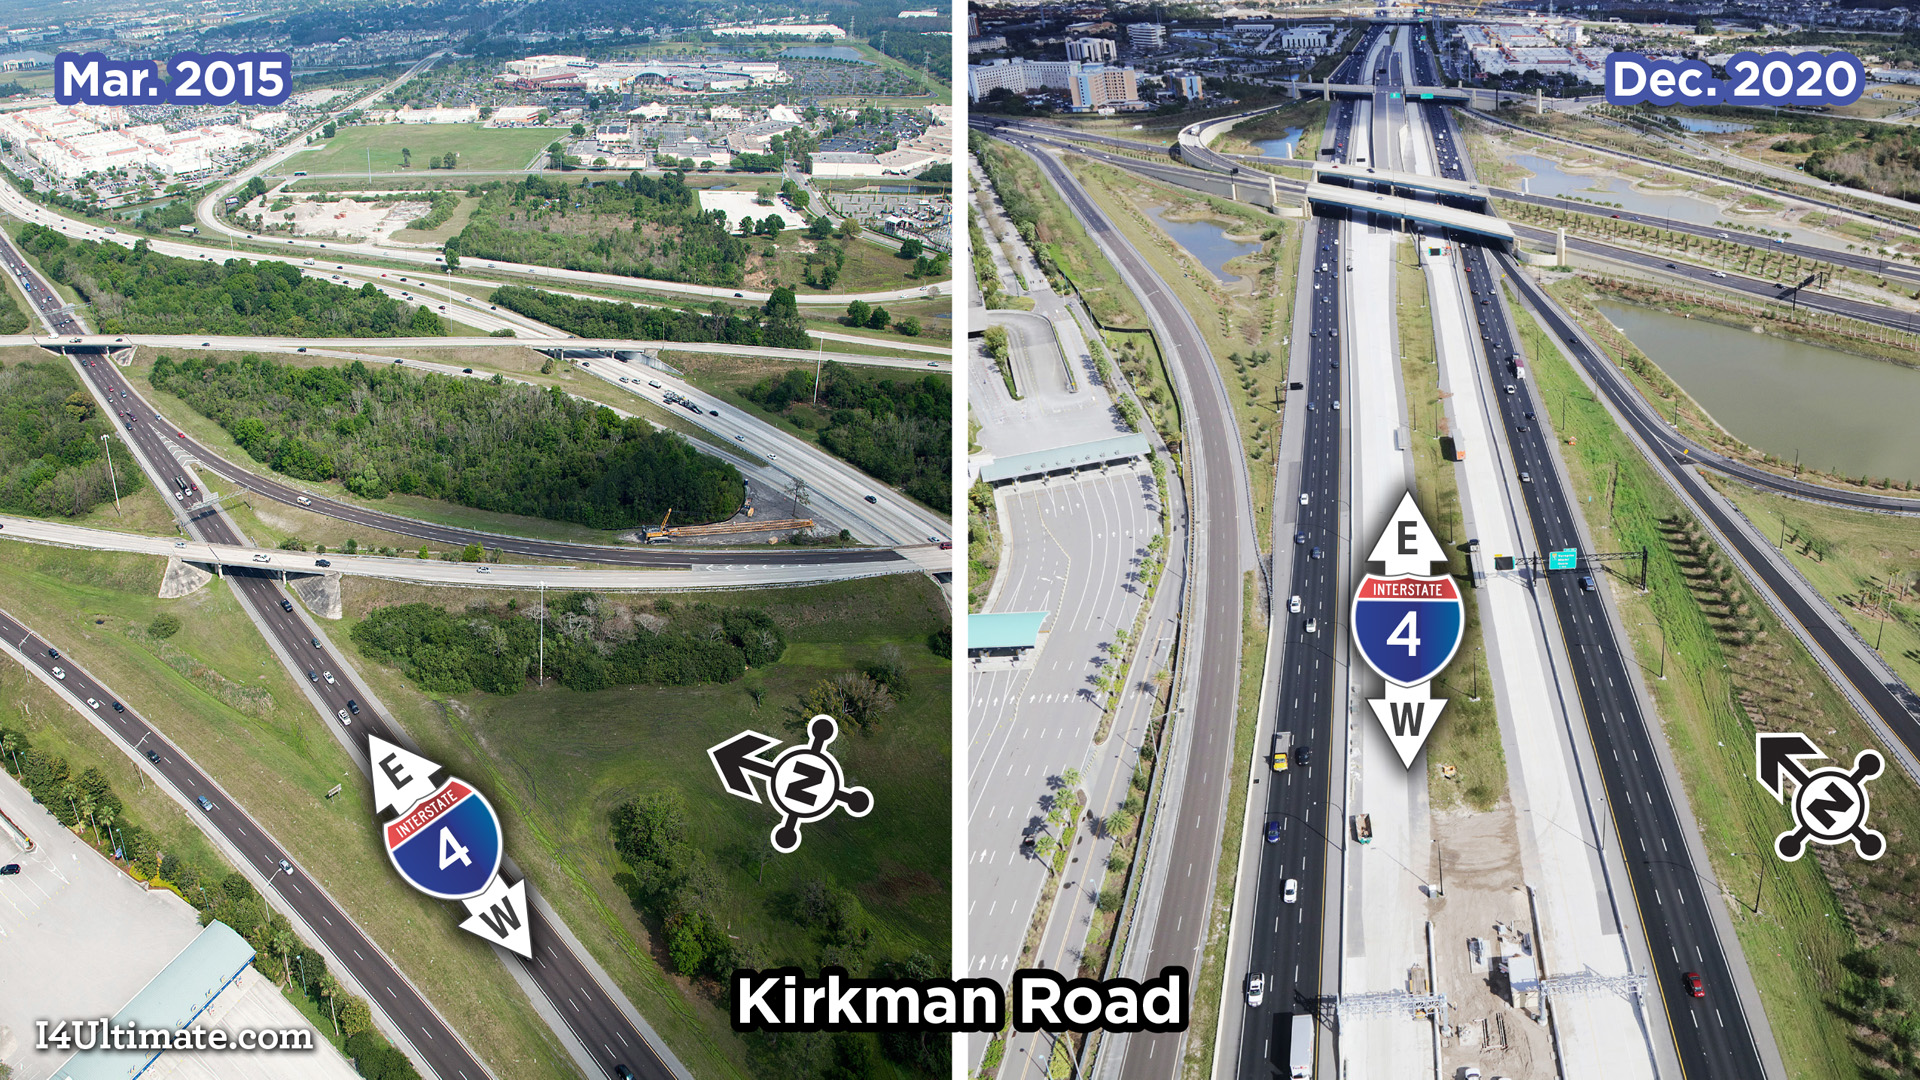 4738-I4Ultimate-GUL-campaign-images-20210212-02-Kirkman-Road